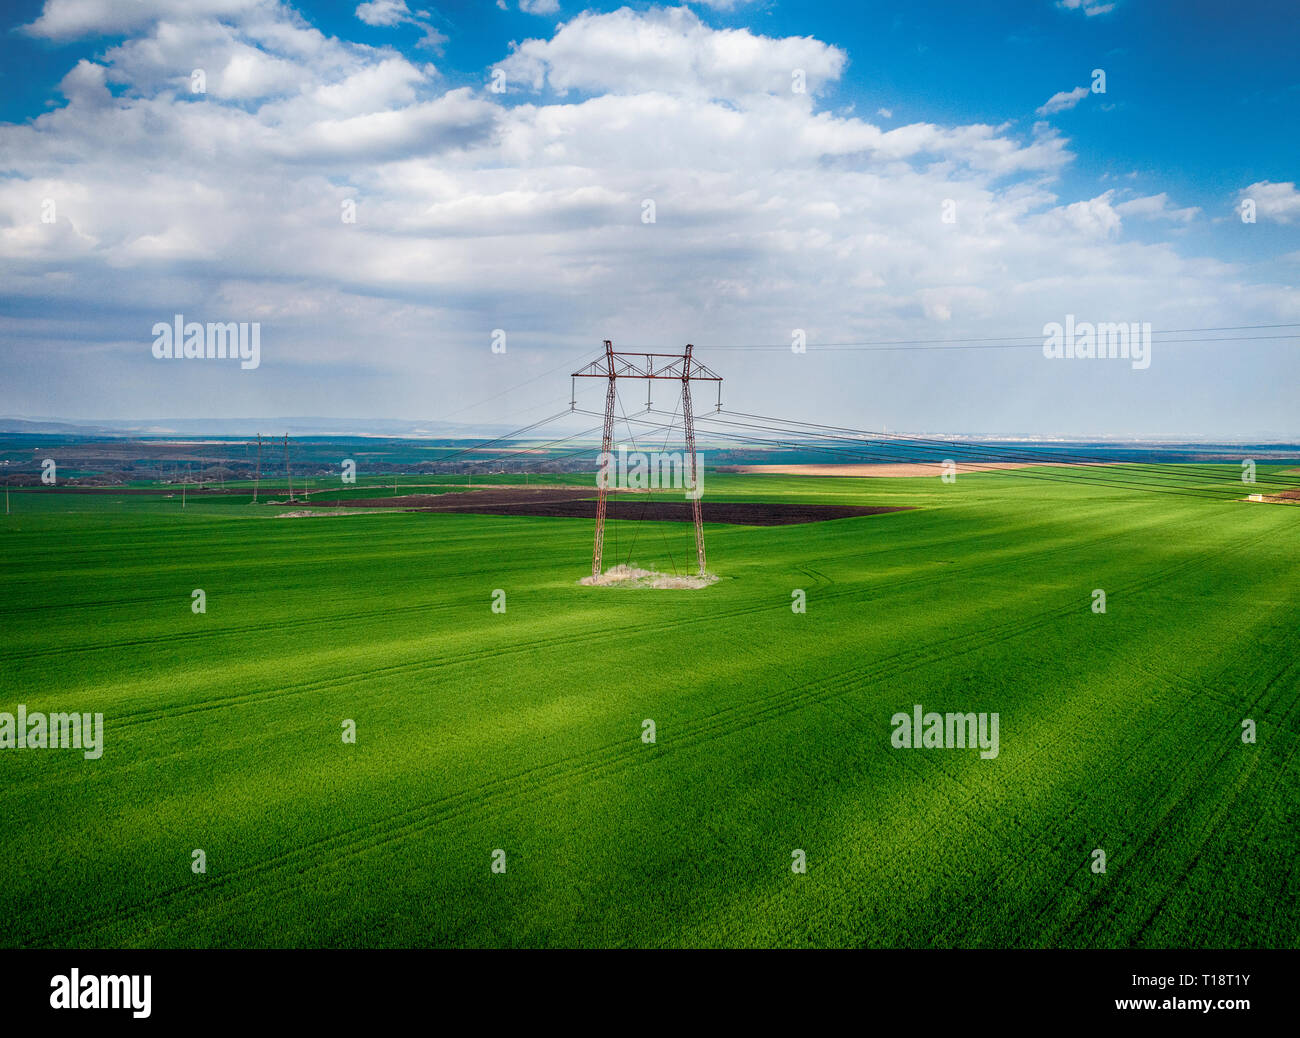 High voltage electricity pylons for power transmission in field from drone pov - Image - Stock Image